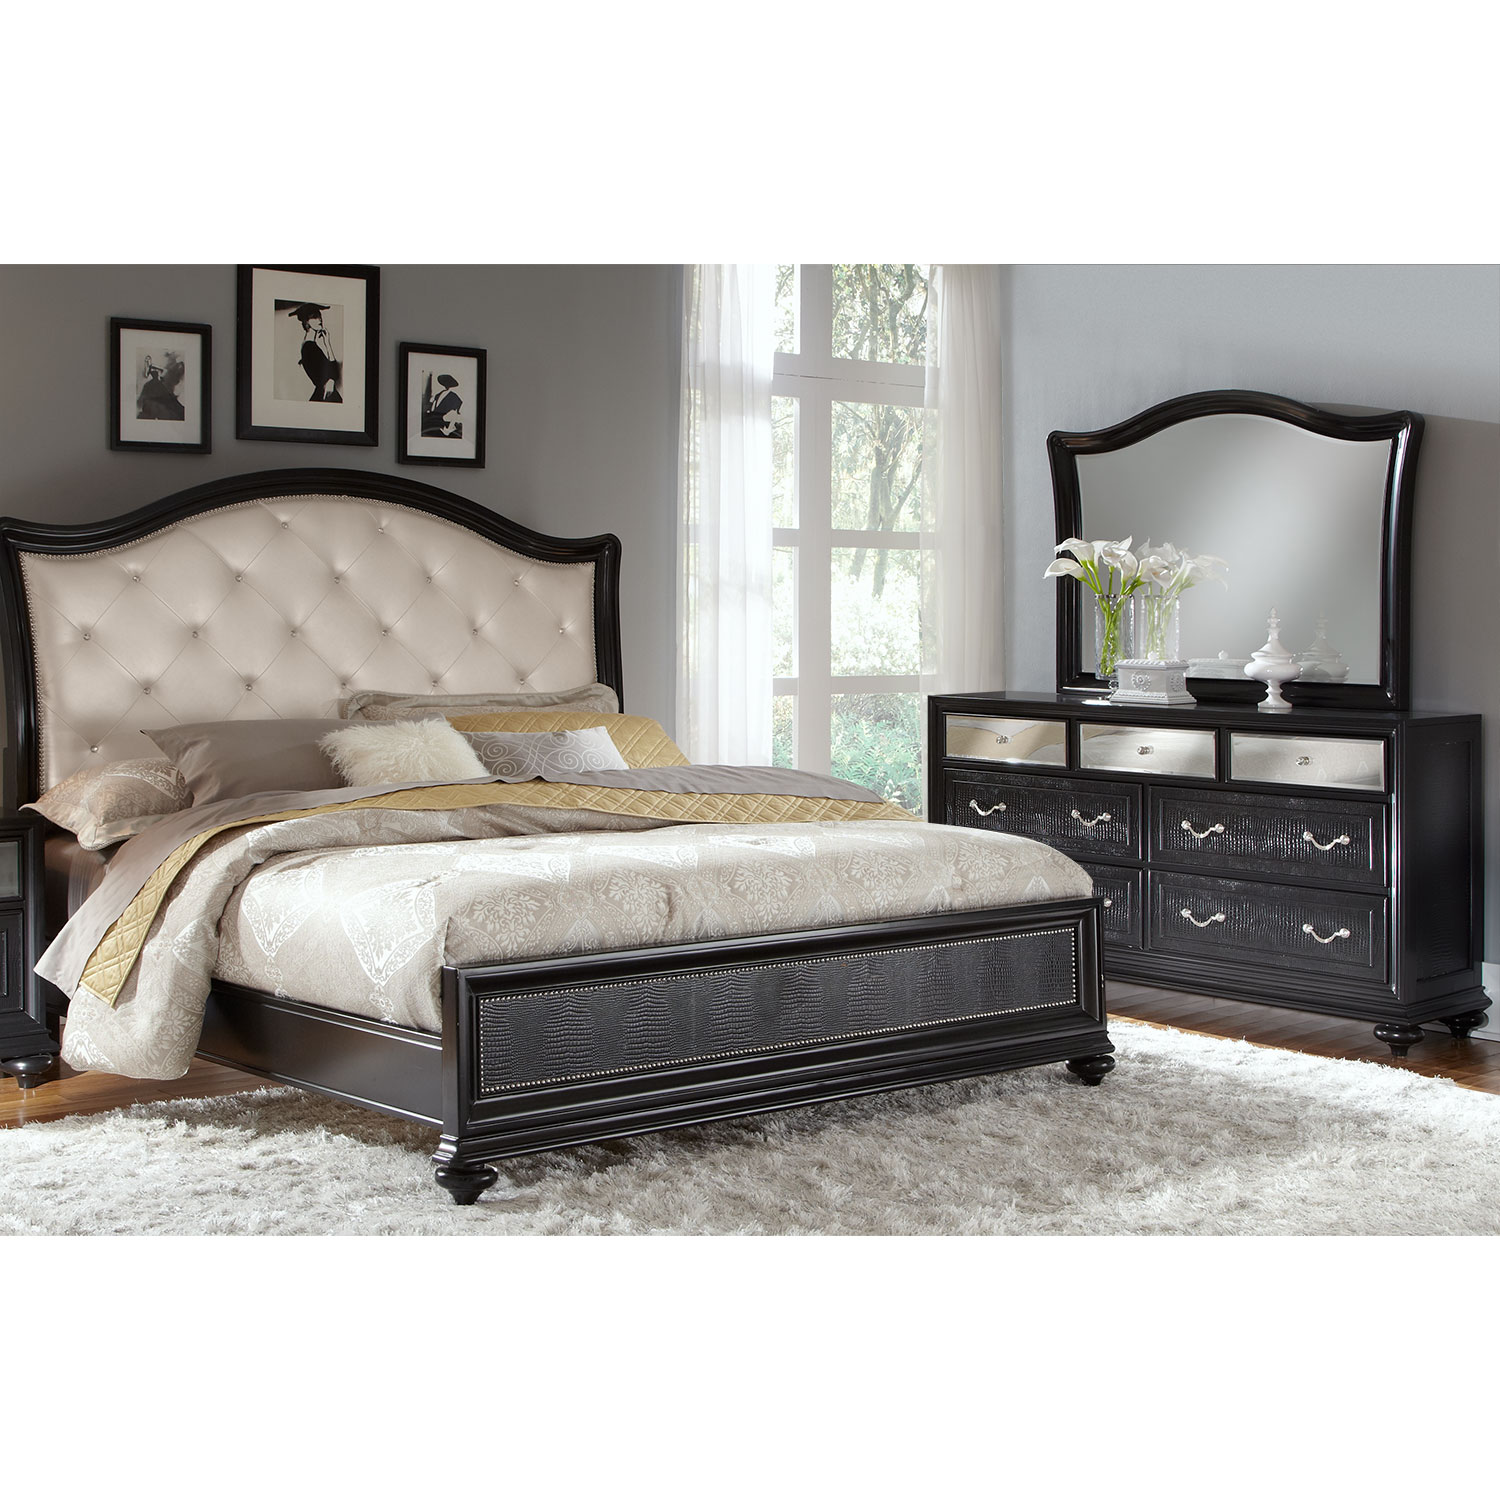 Was 1 699 98 Today 1 529 98 Marilyn 5 Piece Queen Bedroom Set Ebony By Pulaski